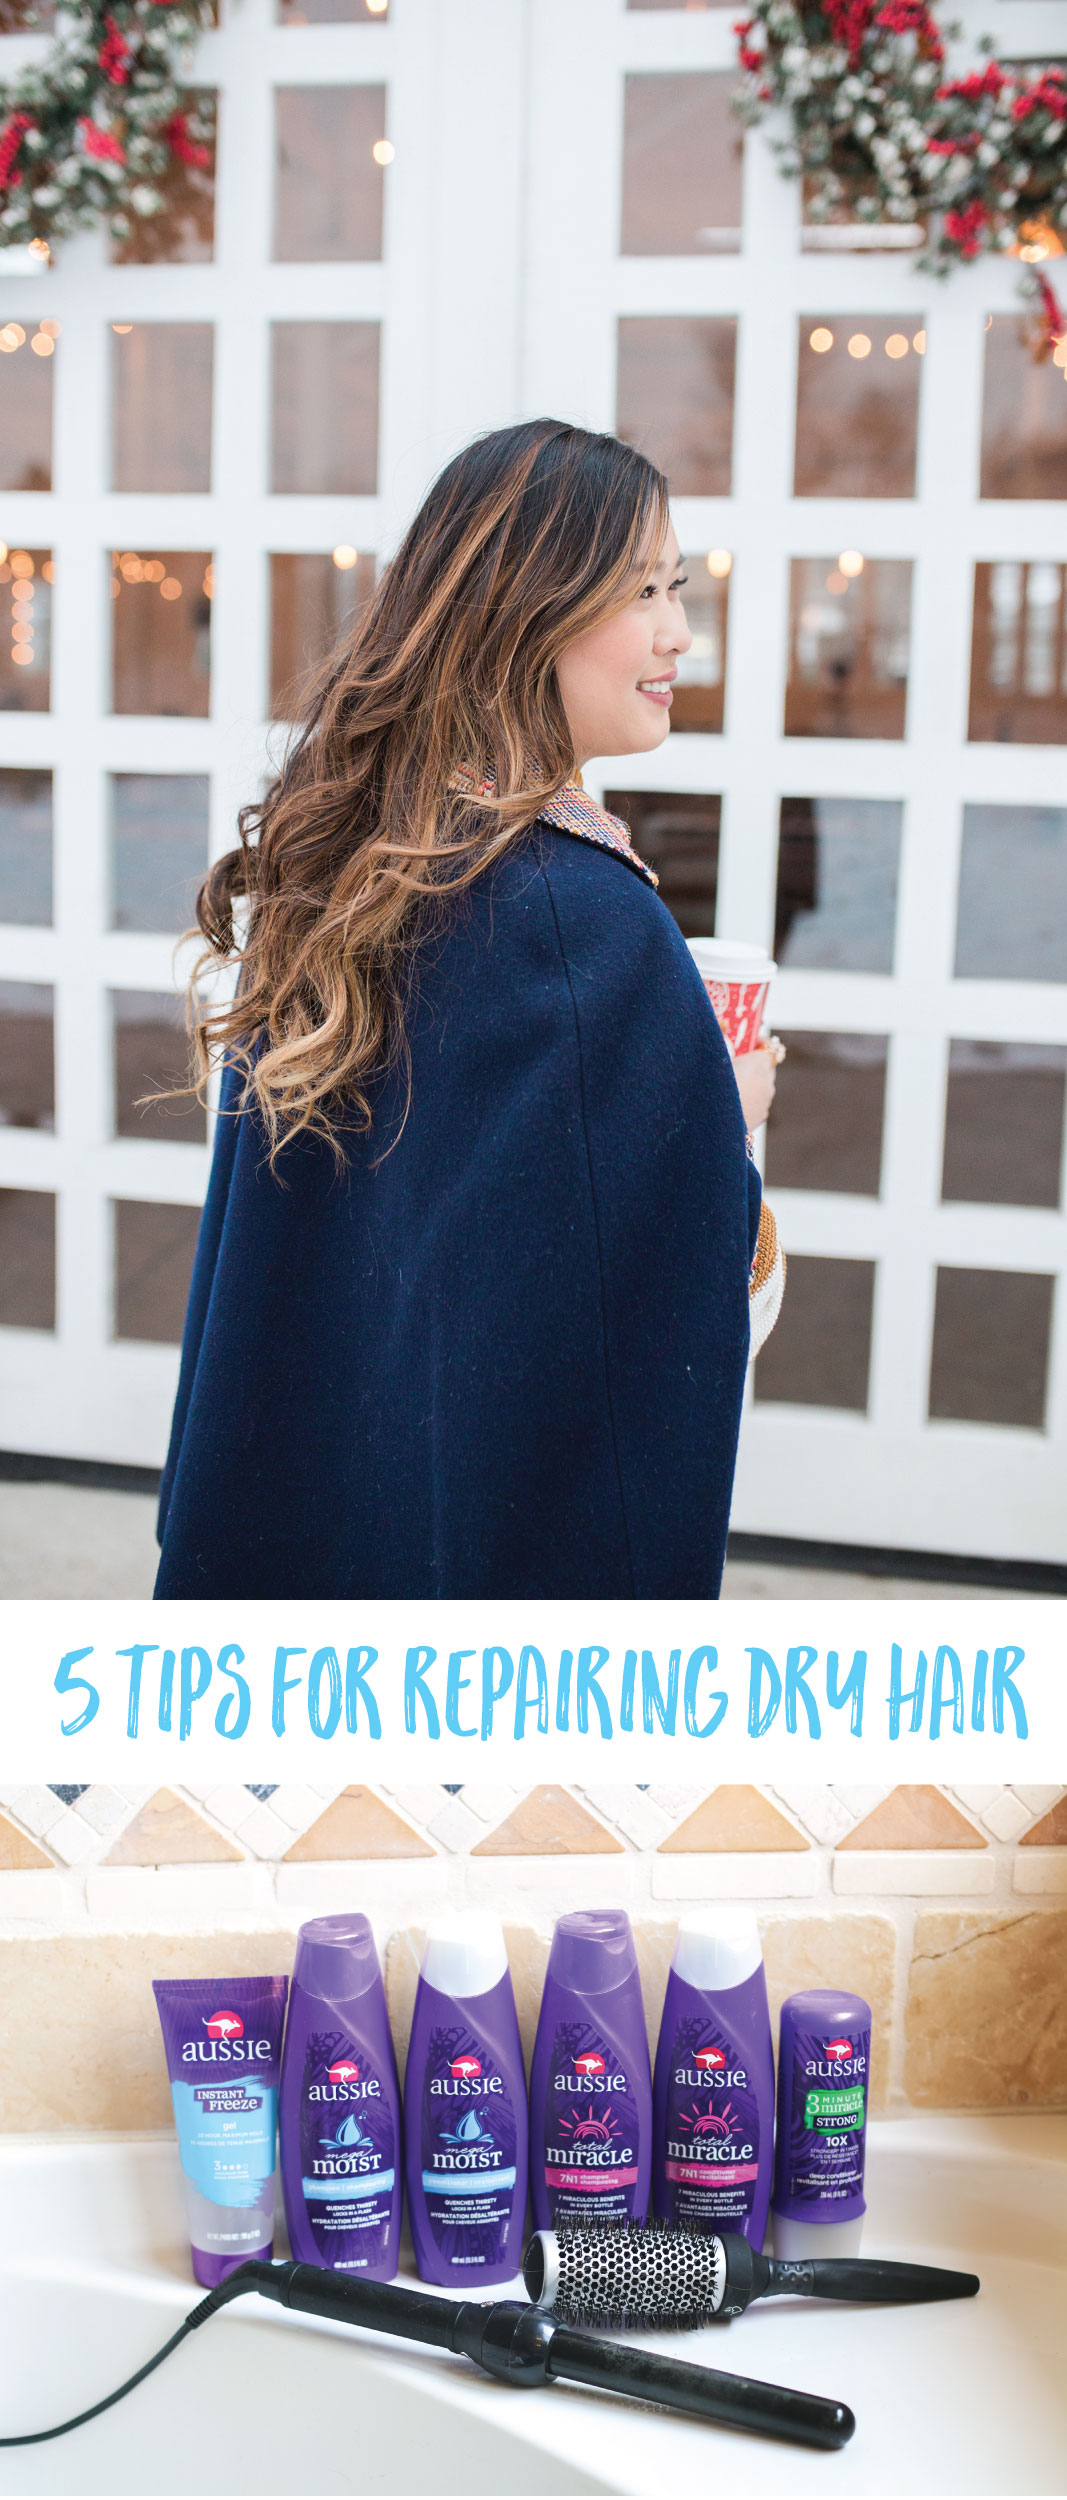 5 Tips For Repairing Dry Hair